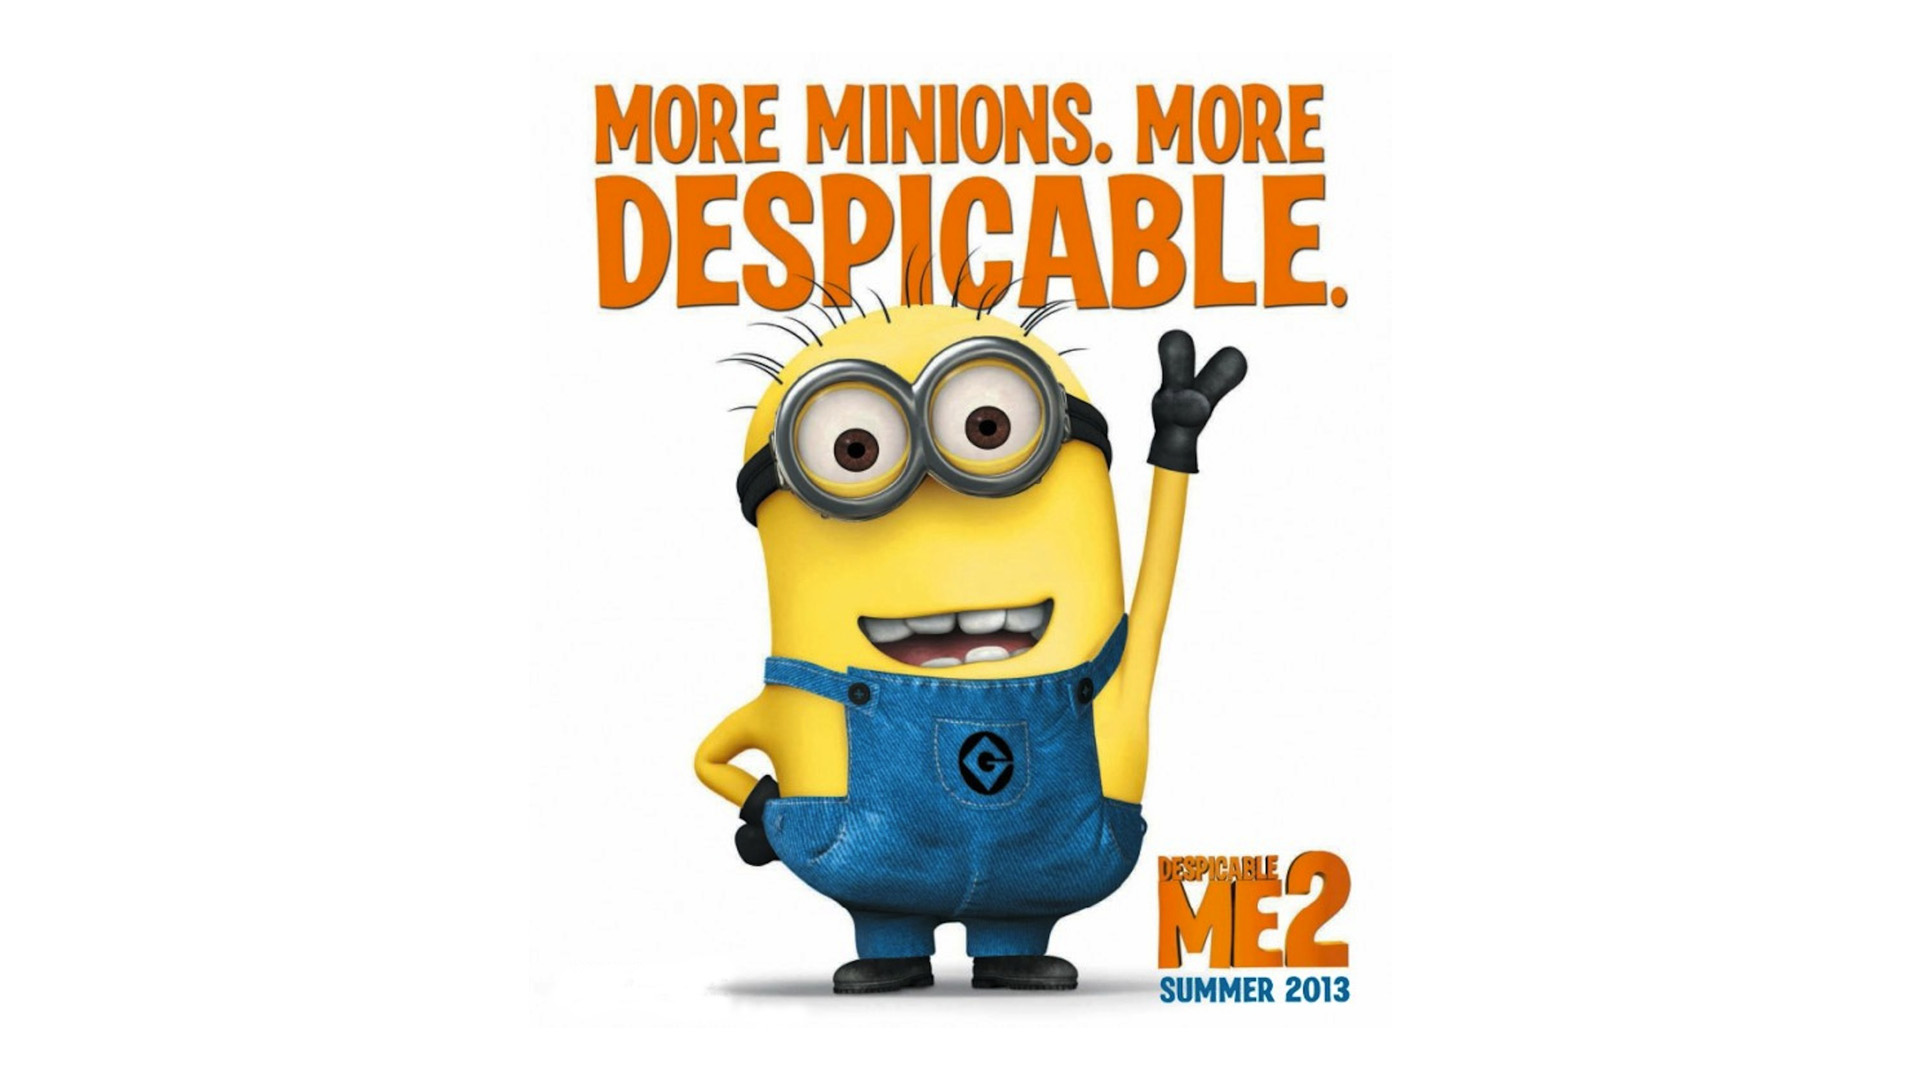 Despicable Me Minions Pictures, Images & Photos | Photobucket